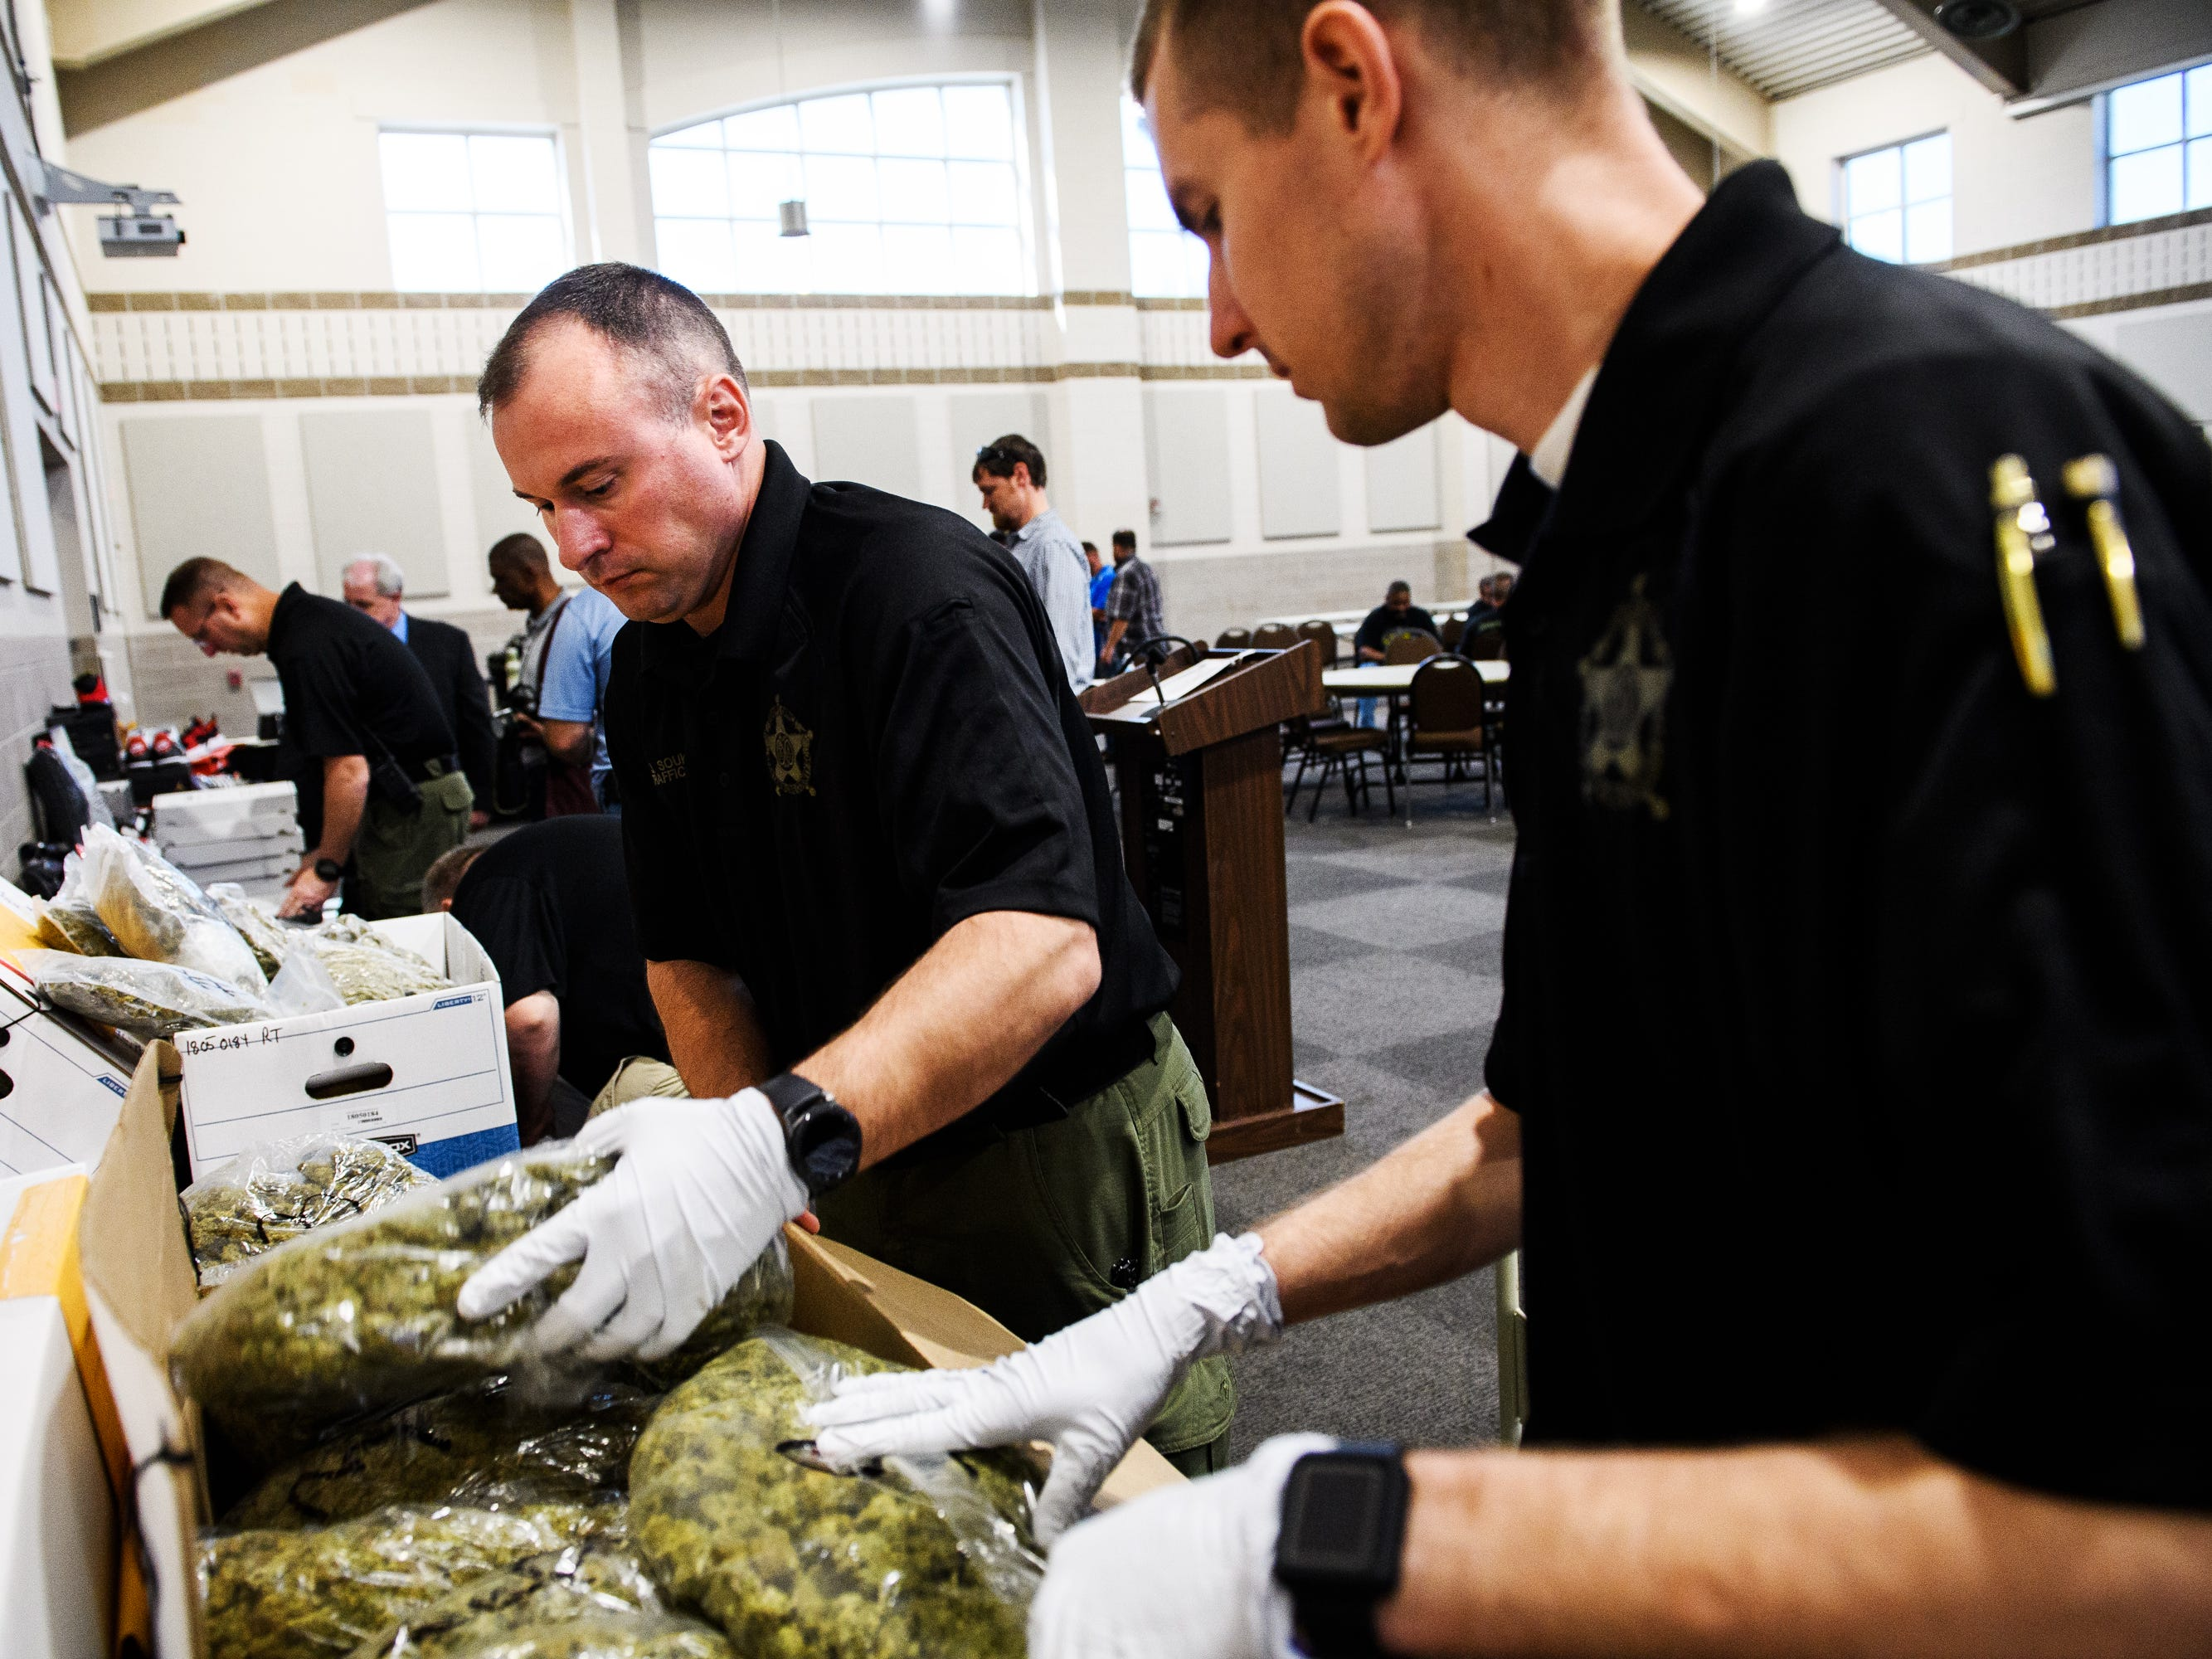 Spartanburg sheriff's deputies pack up bags of marijuana seized during Operation Rolling Thunder on Friday, May 4, 2018. Authorities seized a total 60 pounds of marijuana over four days.